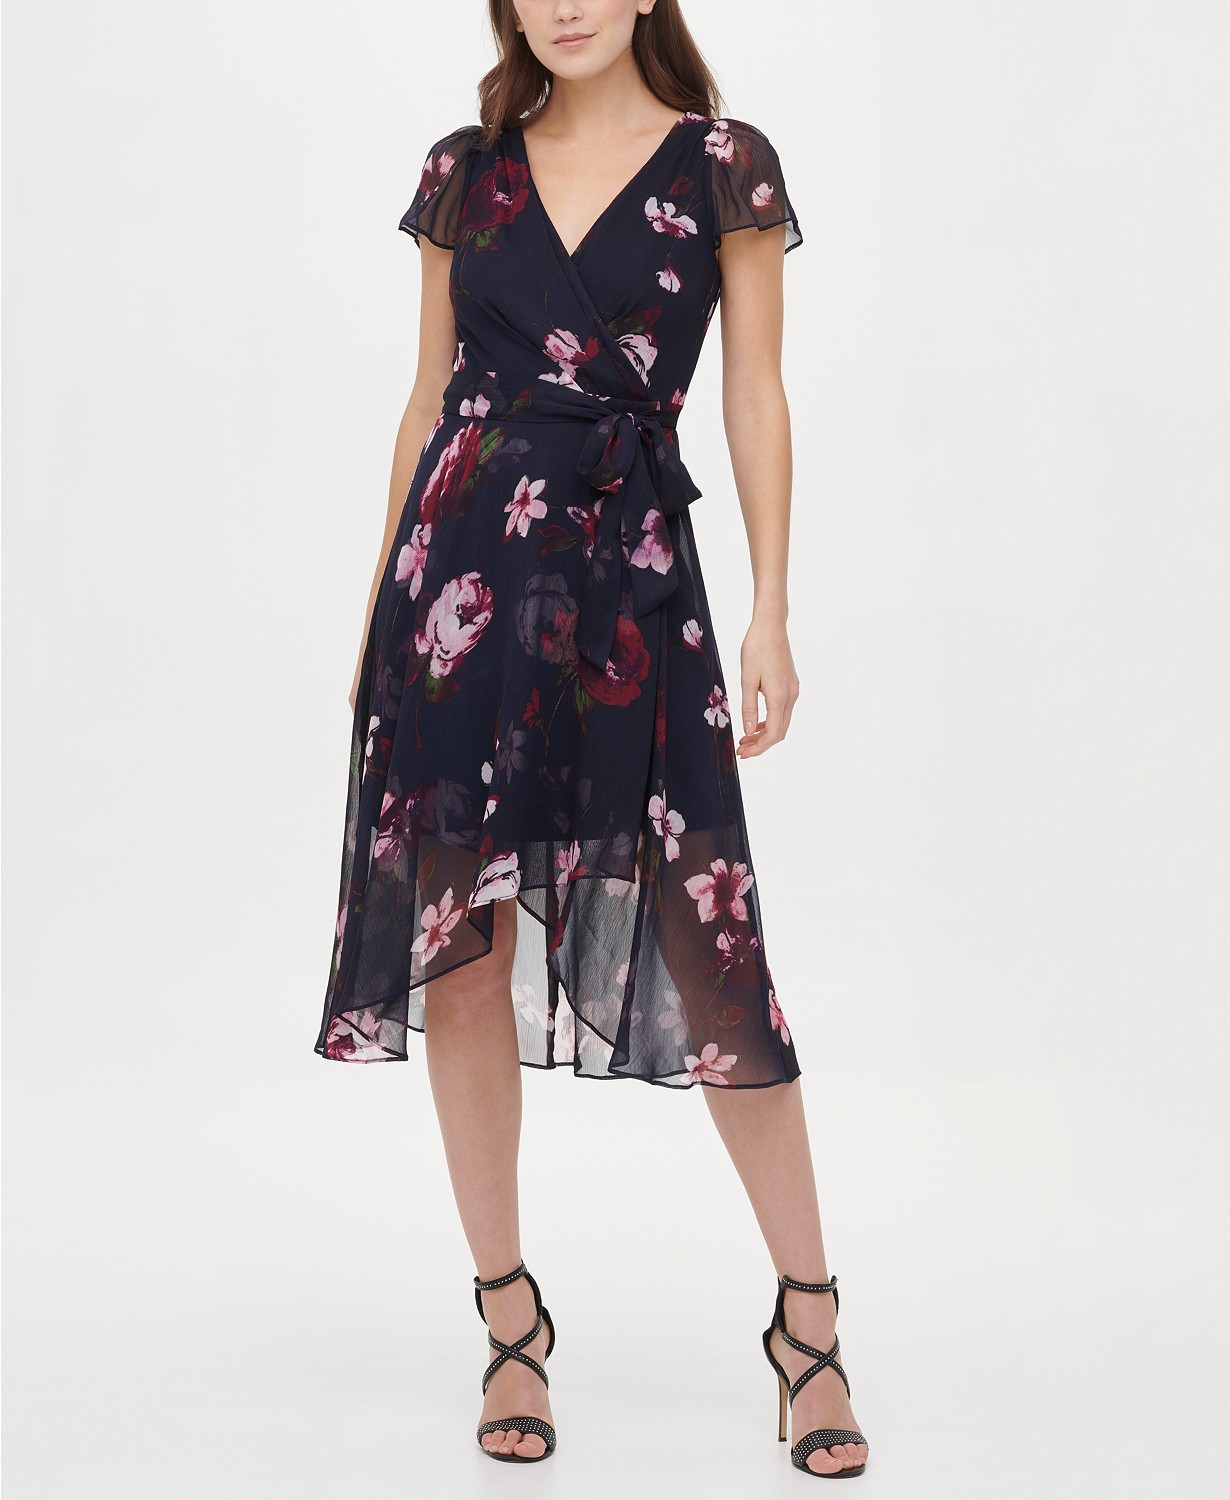 Macy's /  Limited-Time Sale /  30% off Best Brands